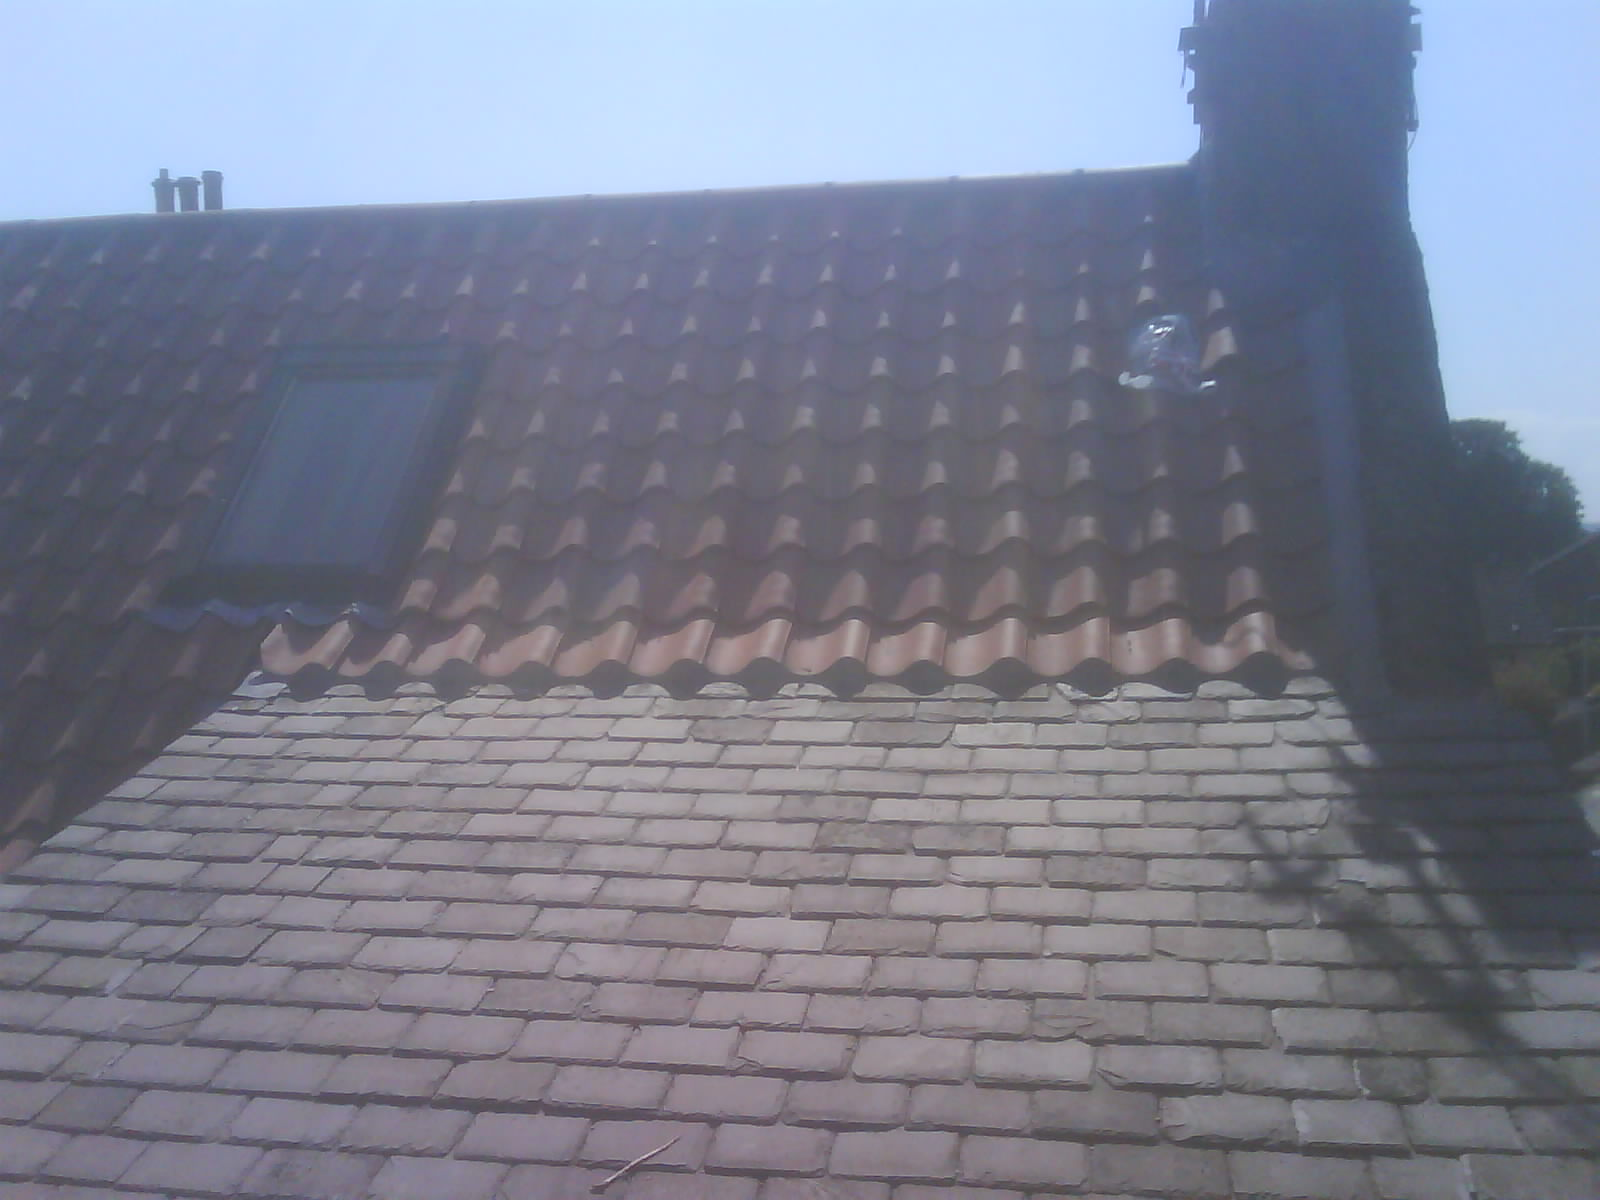 Old english pan tiles with slate roof rear view.JPG